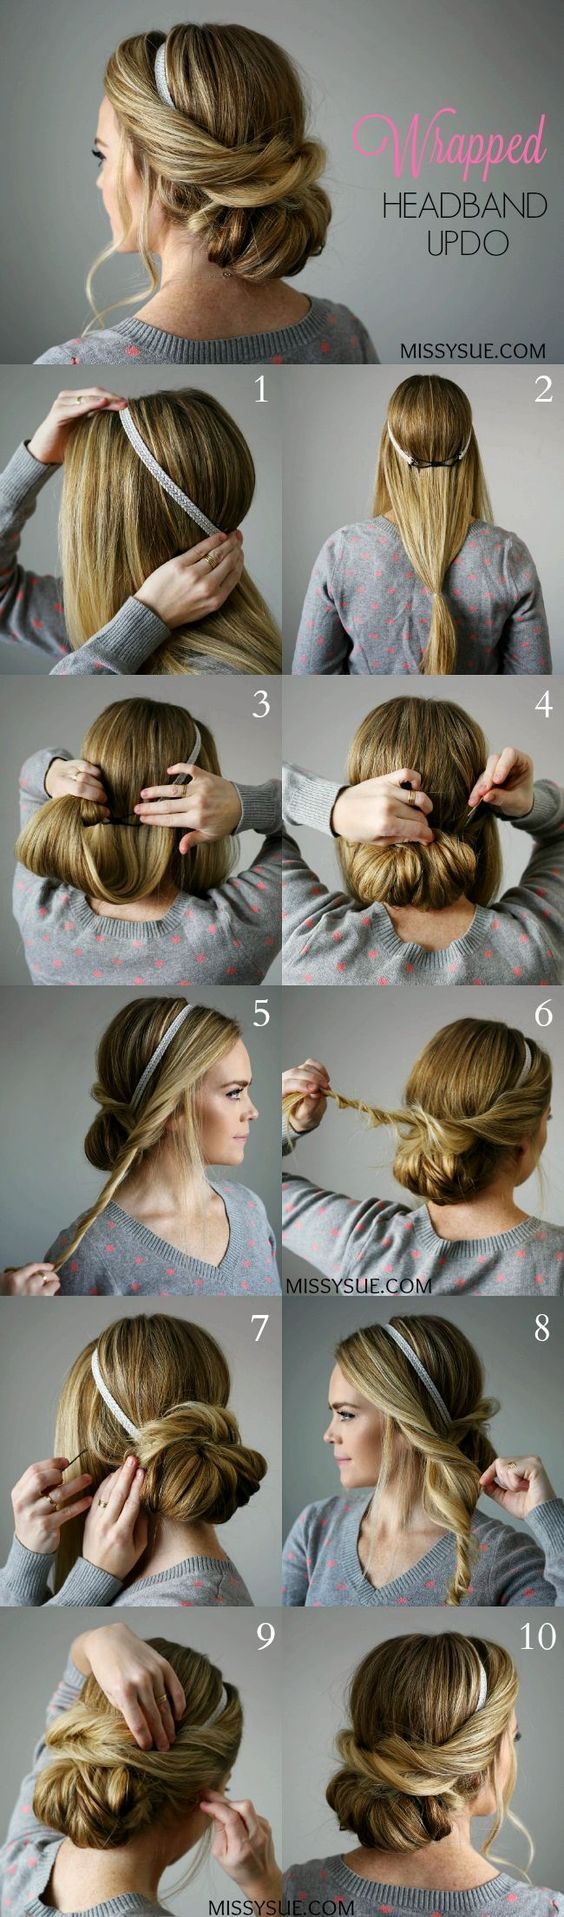 Cute updos for long hair everyday hairstyles short pinterest